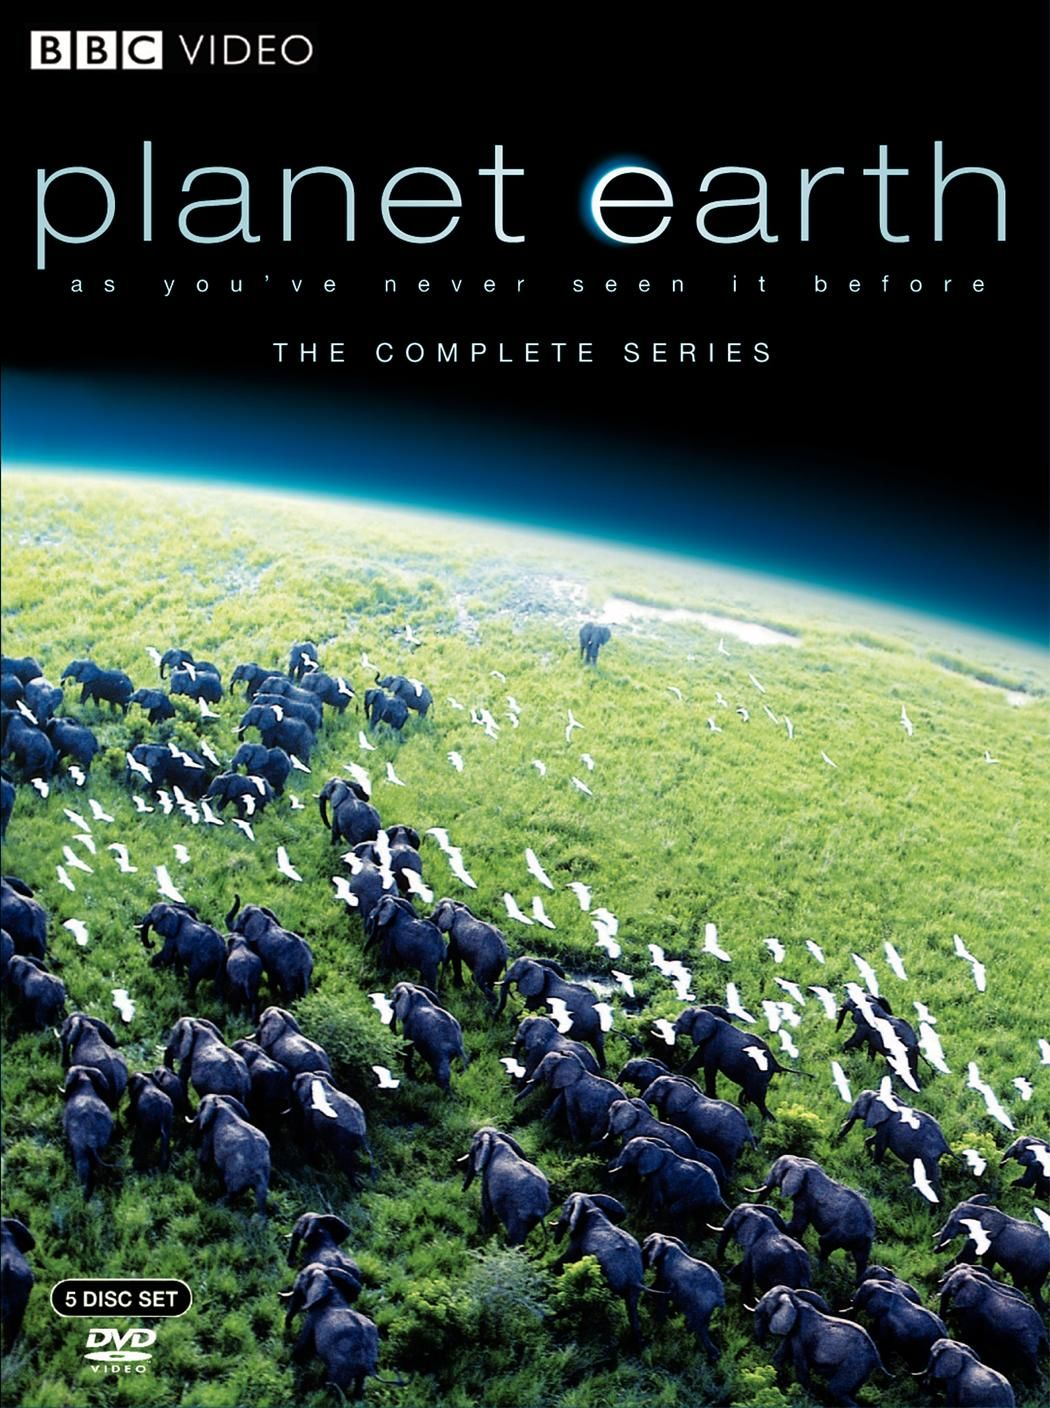 Planet earth ii season 1 episode 2 2016 - 25 Best Ideas About Planet Earth Documentary On Pinterest Watch Planet Earth Online Save Earth Pictures And Human Documentary